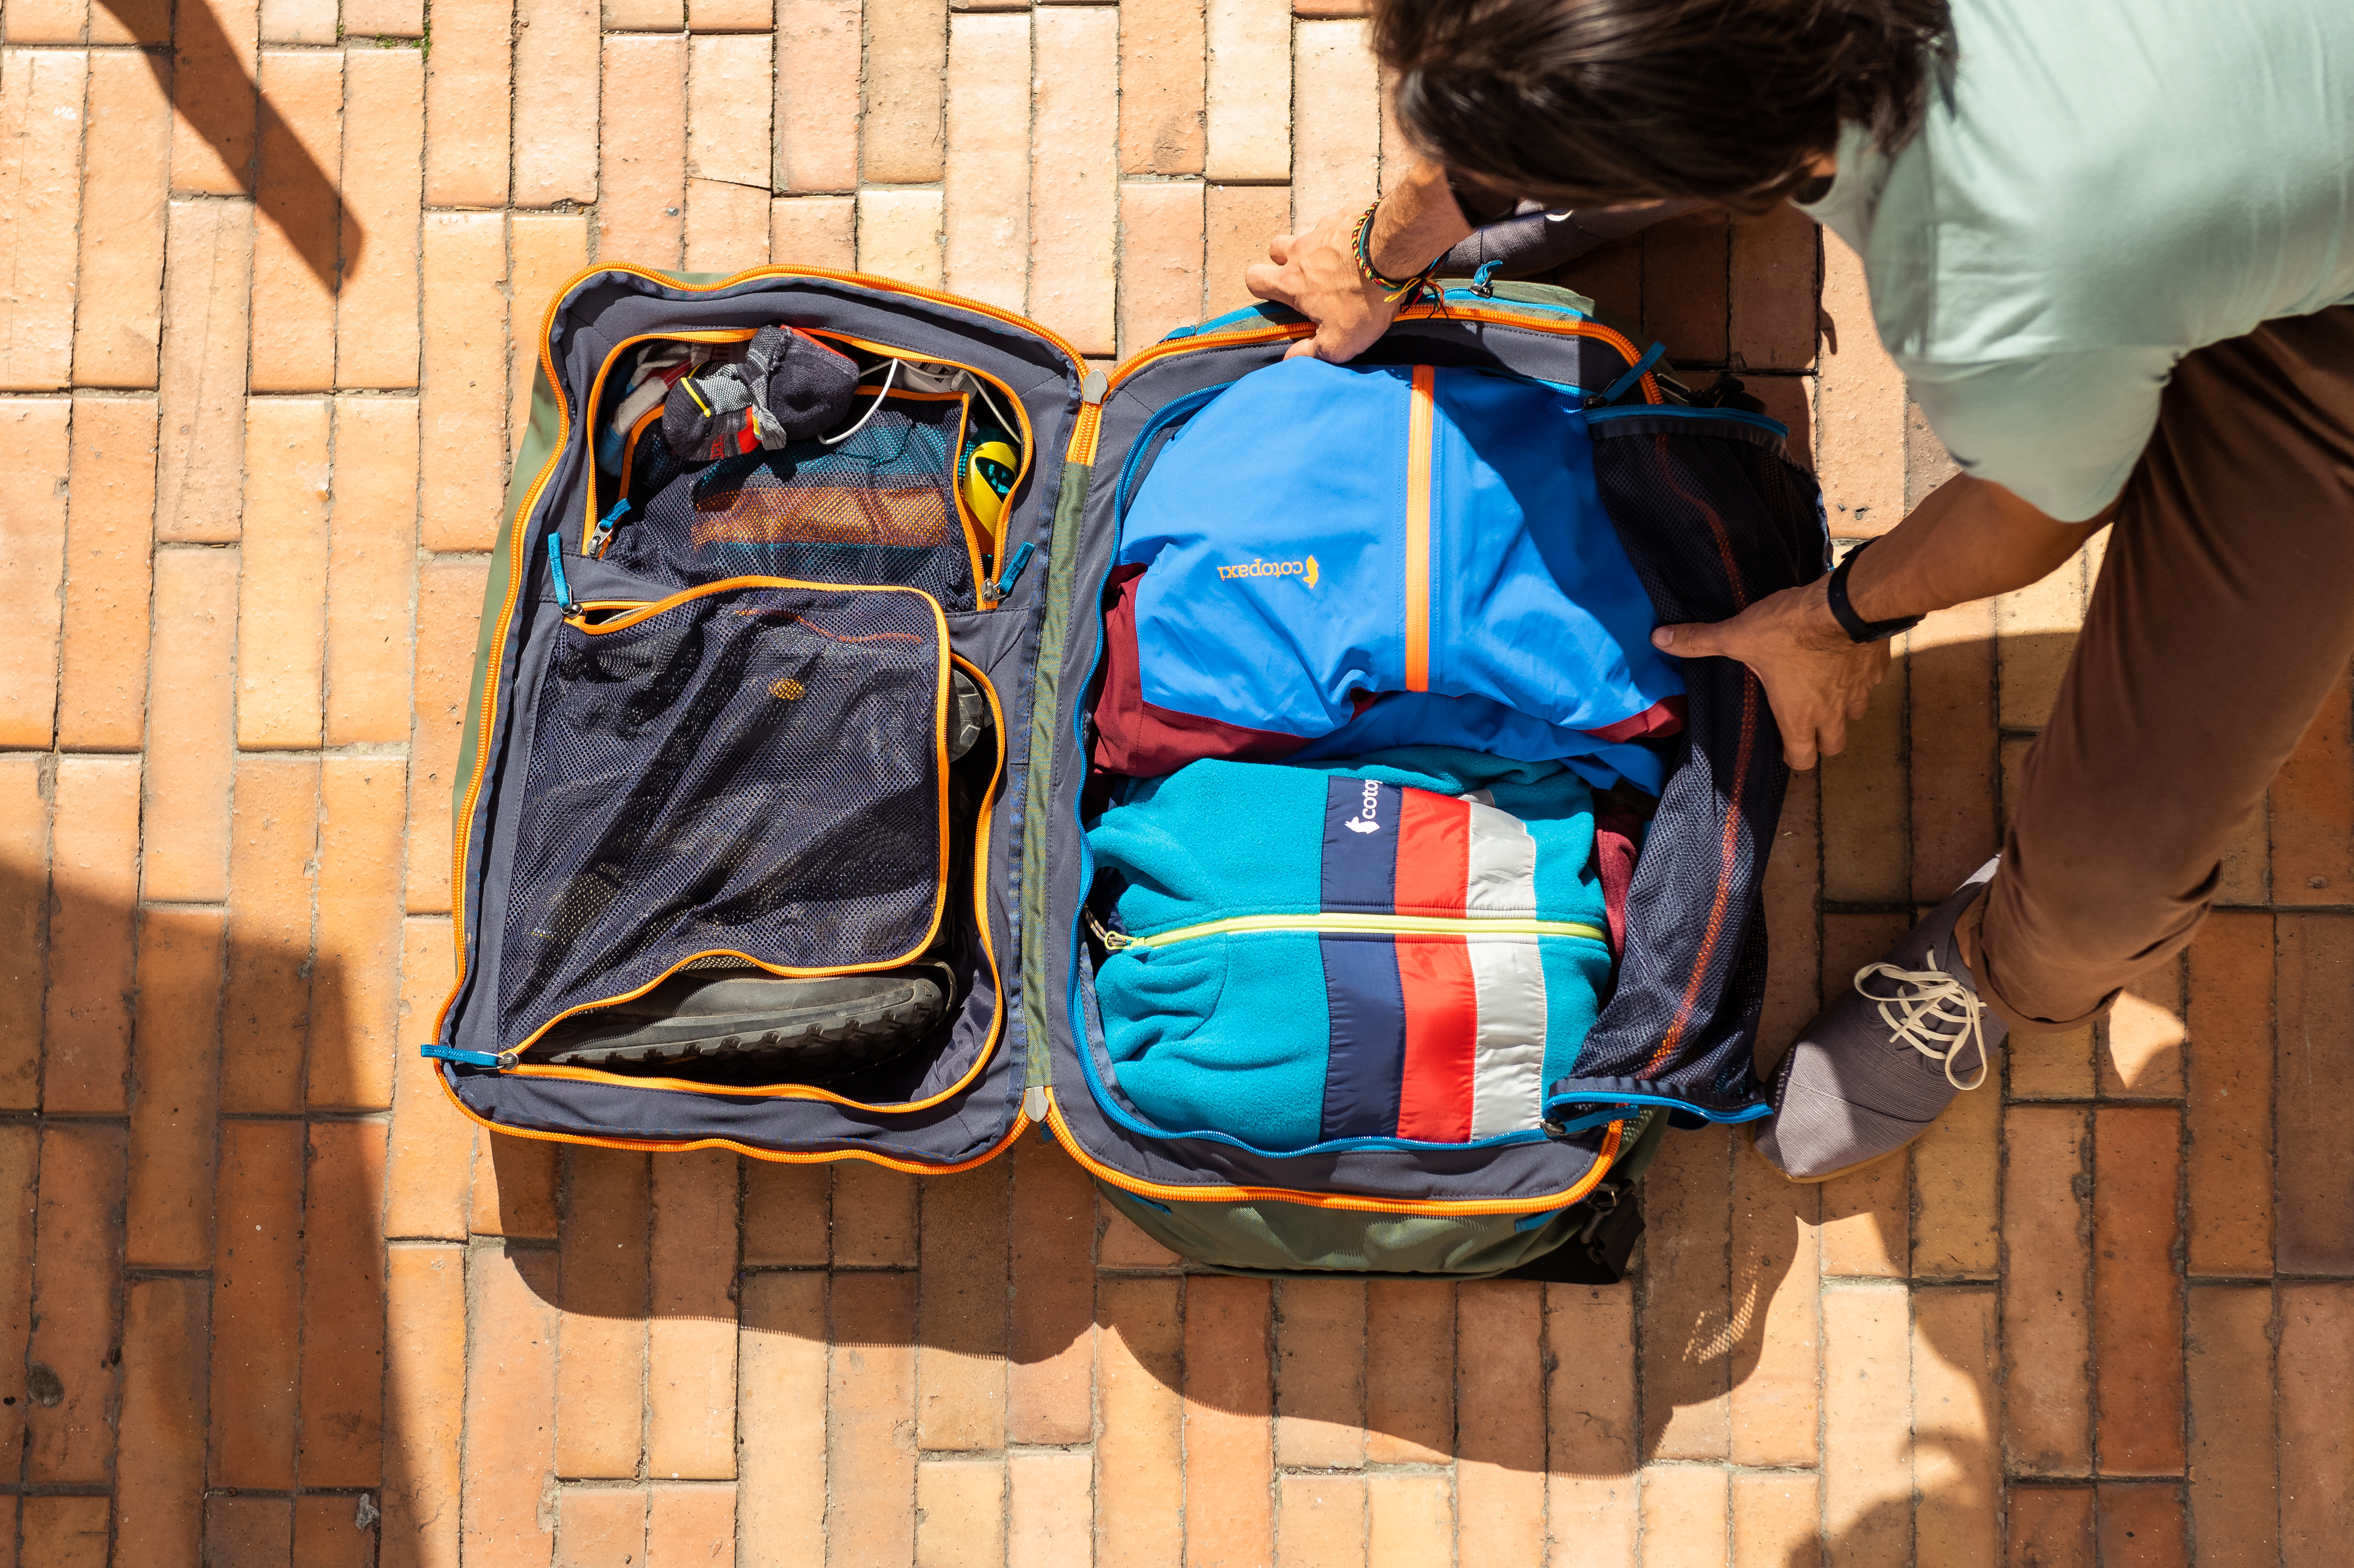 Cotopaxi Allpa 70 Overland Duffel Review: Structured Storage